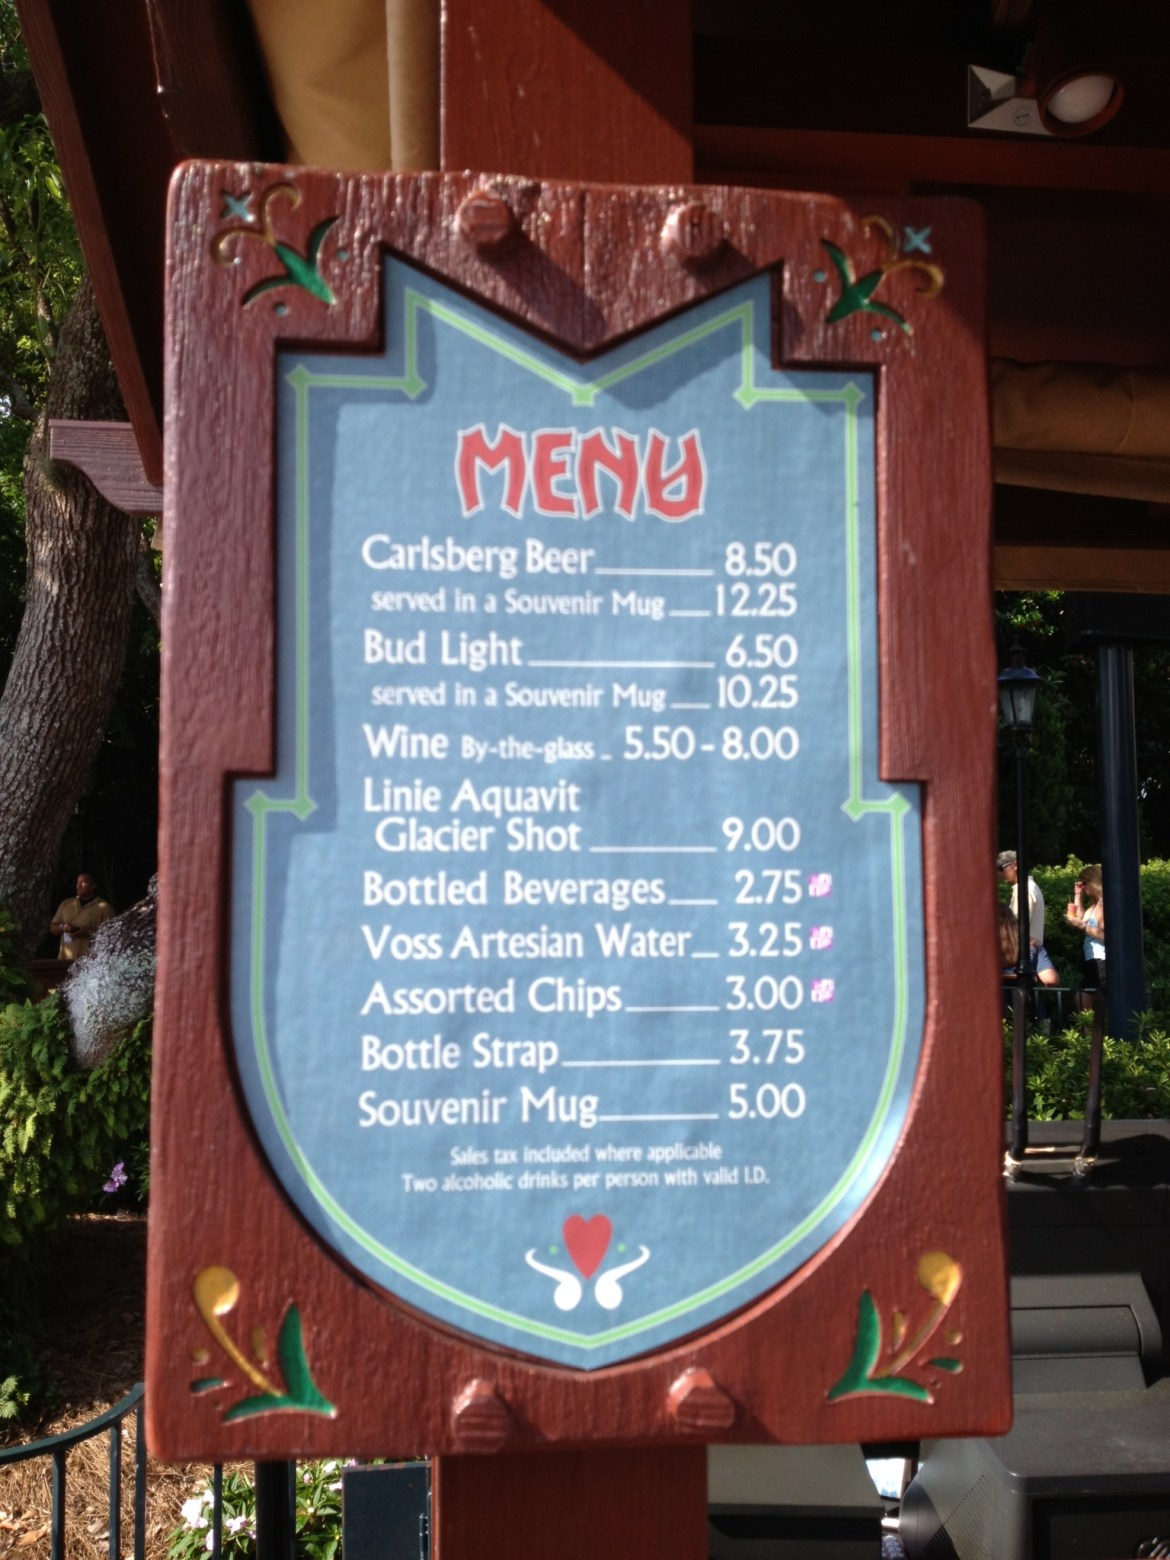 Drink Around the World Showcase – Norway Pavilion